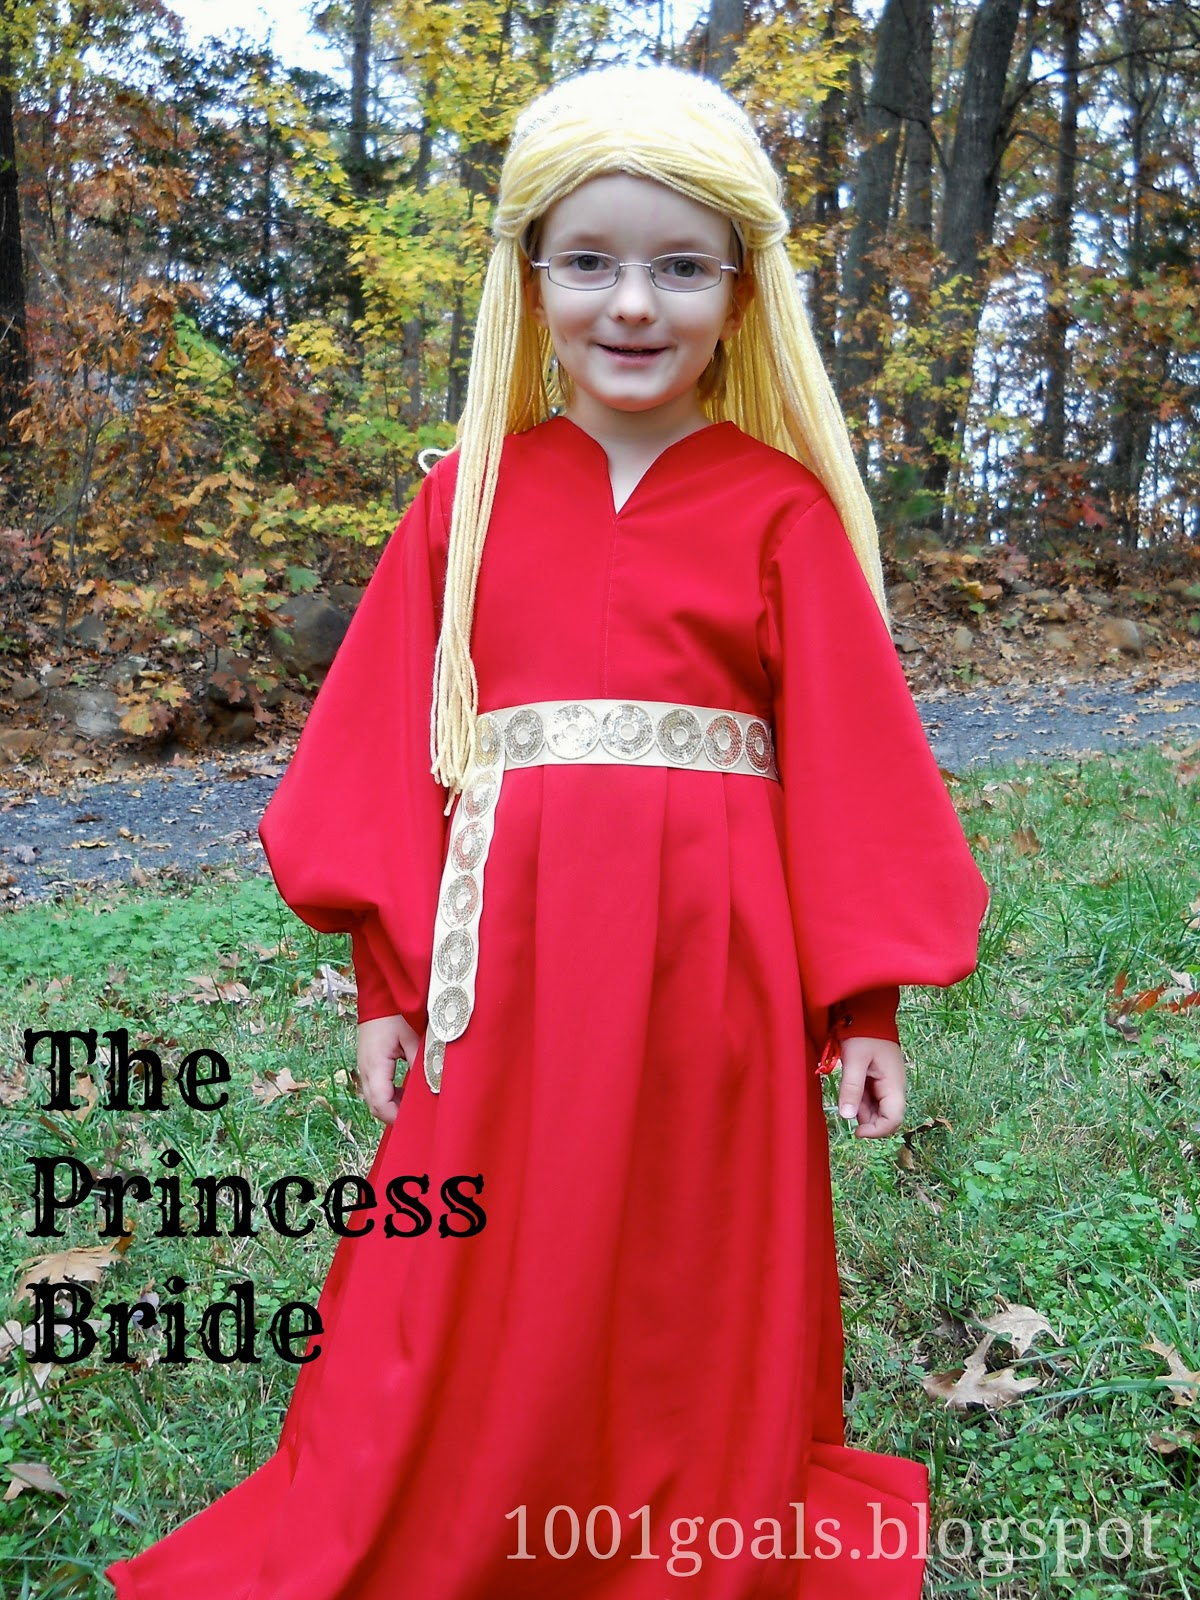 1001 Goals: Princess Buttercup Halloween Costume